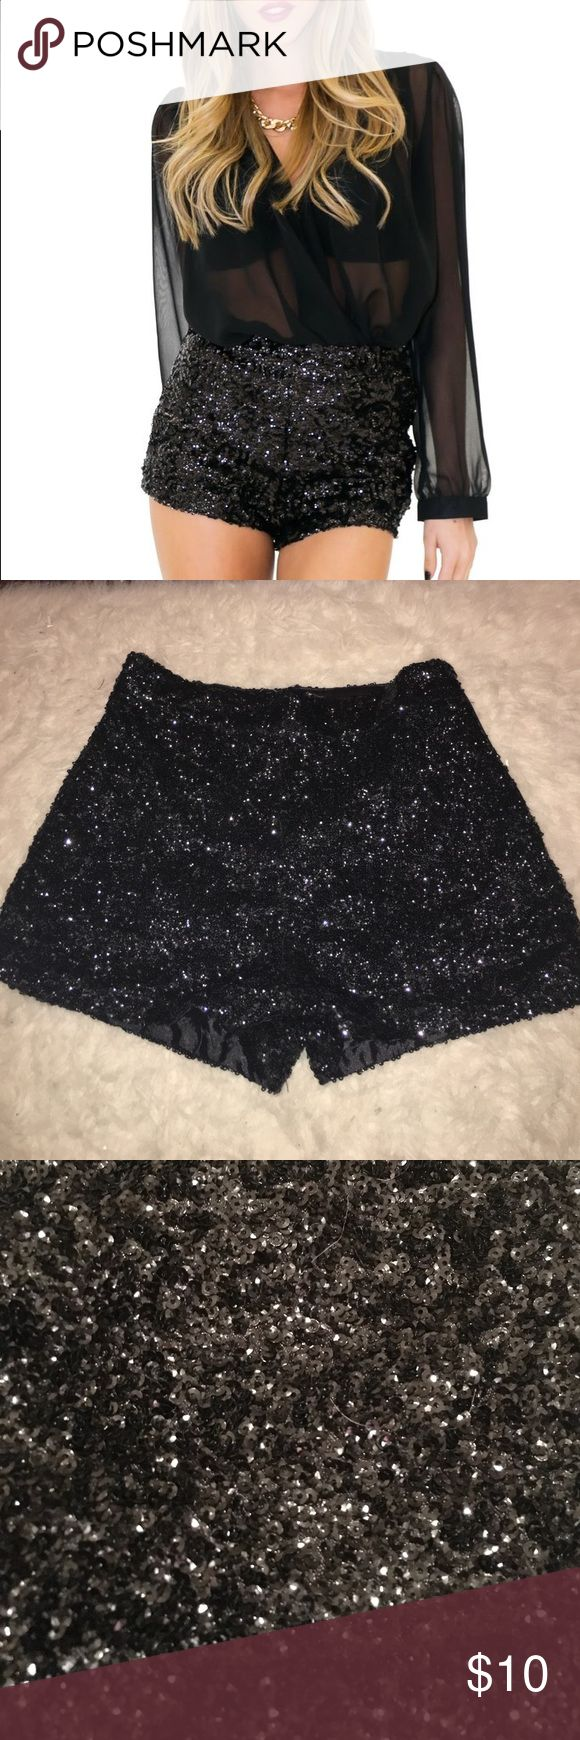 Dazzling High Waisted Black Sequin Shorts S New without tags. No flaws. Size S (would fit sizes 2-4) Has a bunch of very small sequins all over, creating a gorgeous, multidimensional shine. The brand is l'atiste. *not nasty gal, tagged as so for exposure* Nasty Gal Shorts